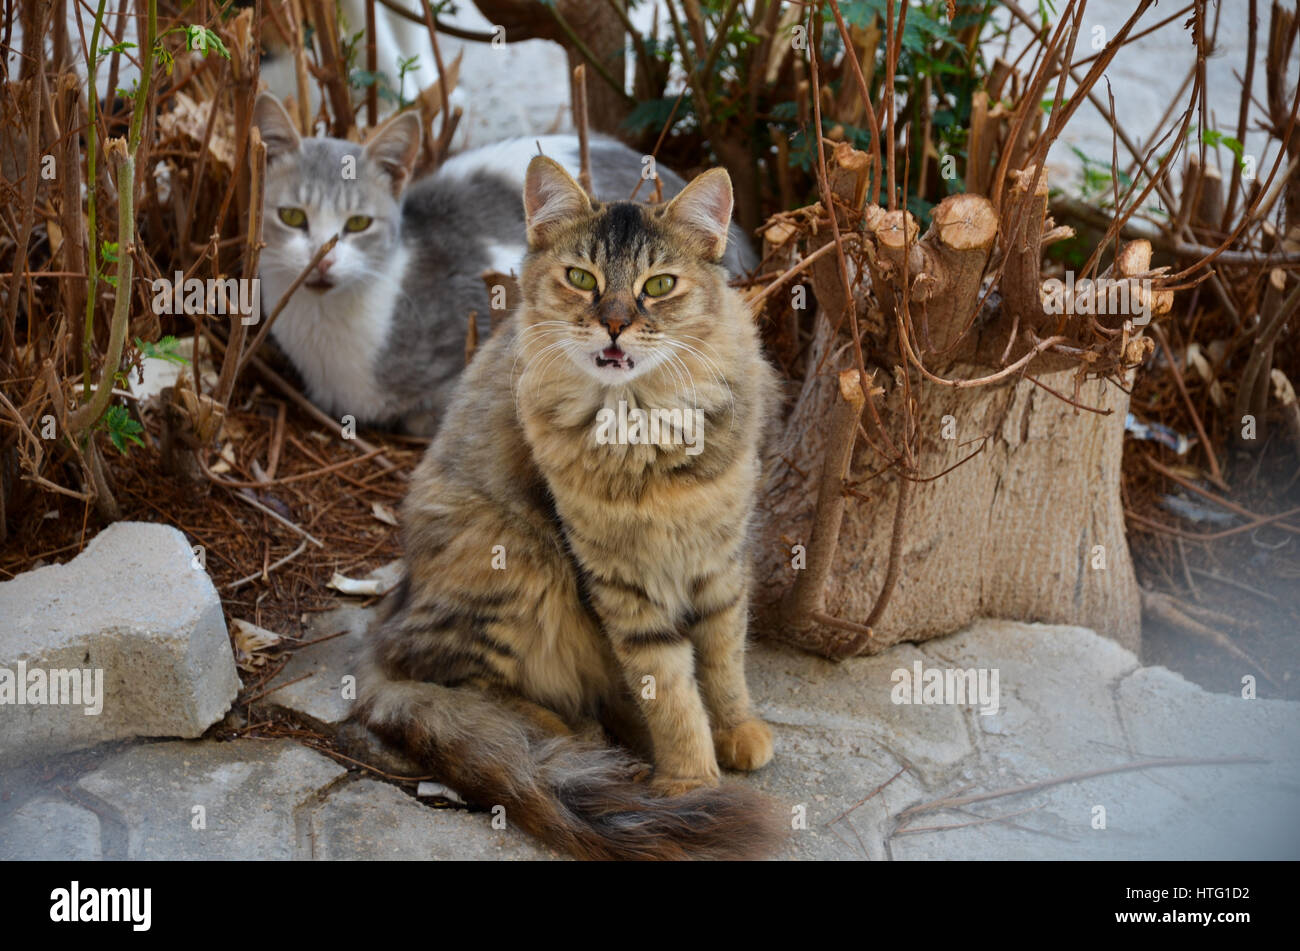 Fluffy cats - Stock Image